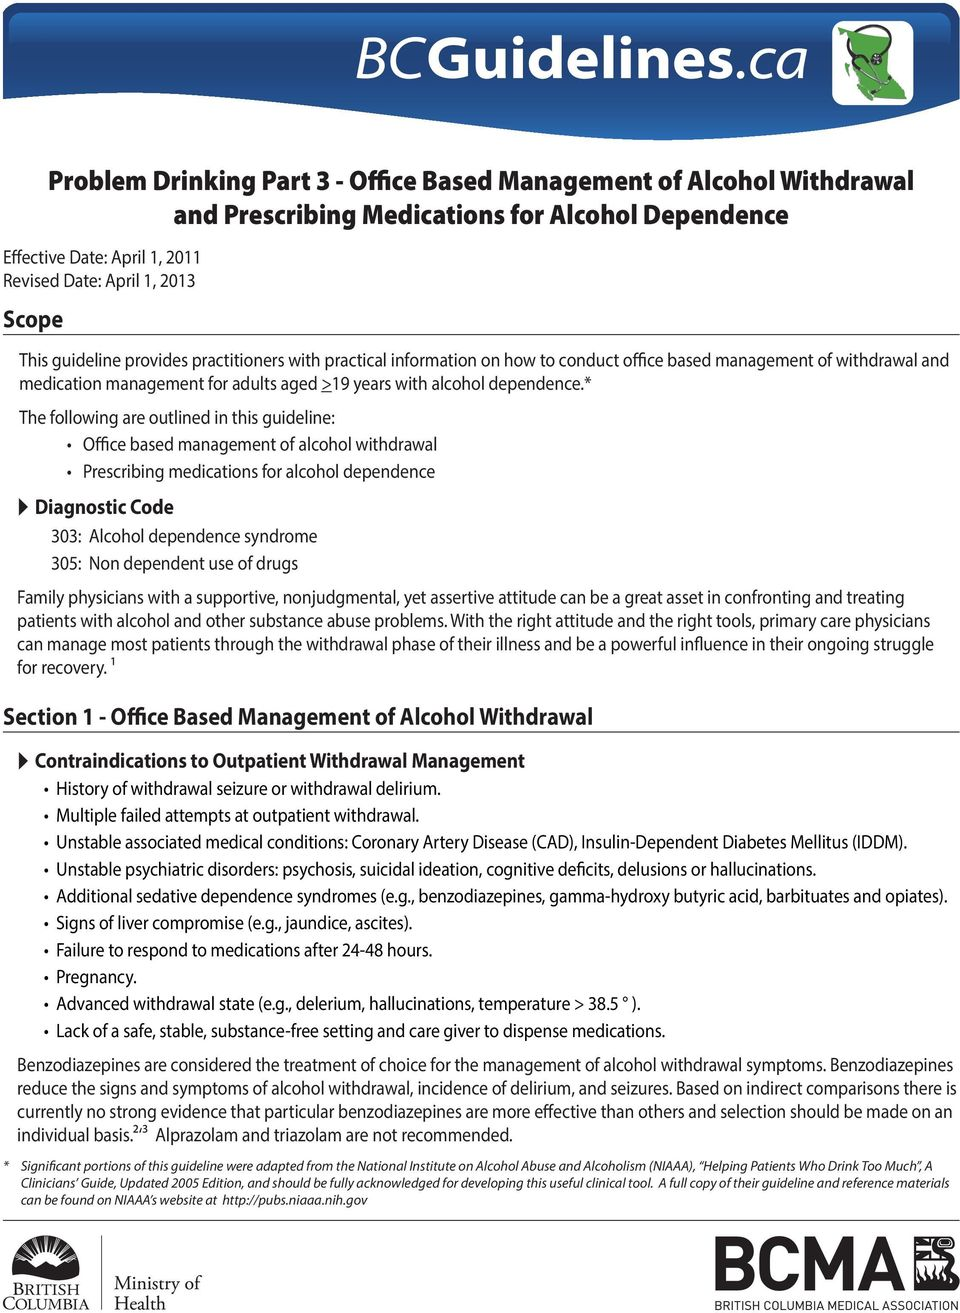 * The following are outlined in this guideline: Office based management of alcohol withdrawal Prescribing medications for alcohol dependence Diagnostic Code 303: Alcohol dependence syndrome 305: Non